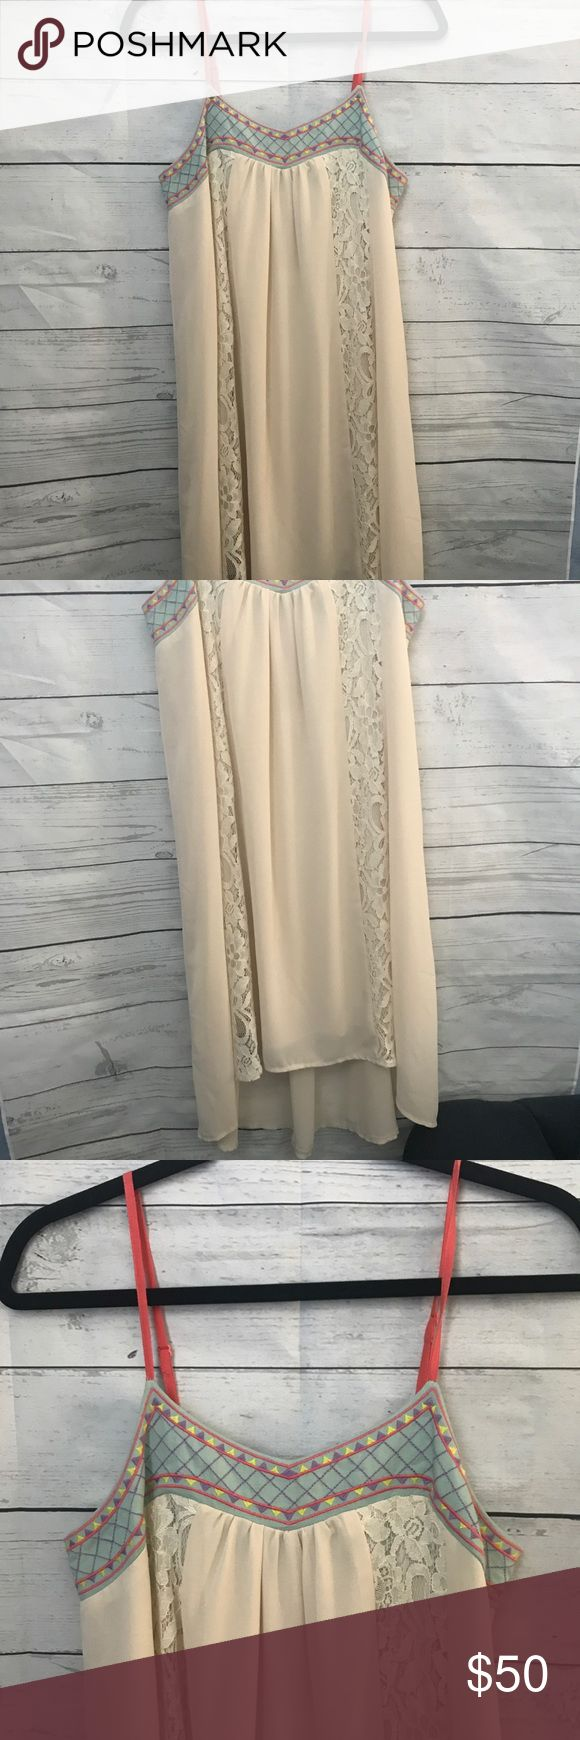 NWT Flying Tomato Cream Lace Dress New with tags dress! Cream color with lace inserts and a colorful top neckline area. Stitched design on top with adjustable spaghetti straps. Light of a high low style. Size small but can fit medium for sure! Offers are welcome. No trades Flying Tomato Dresses High Low